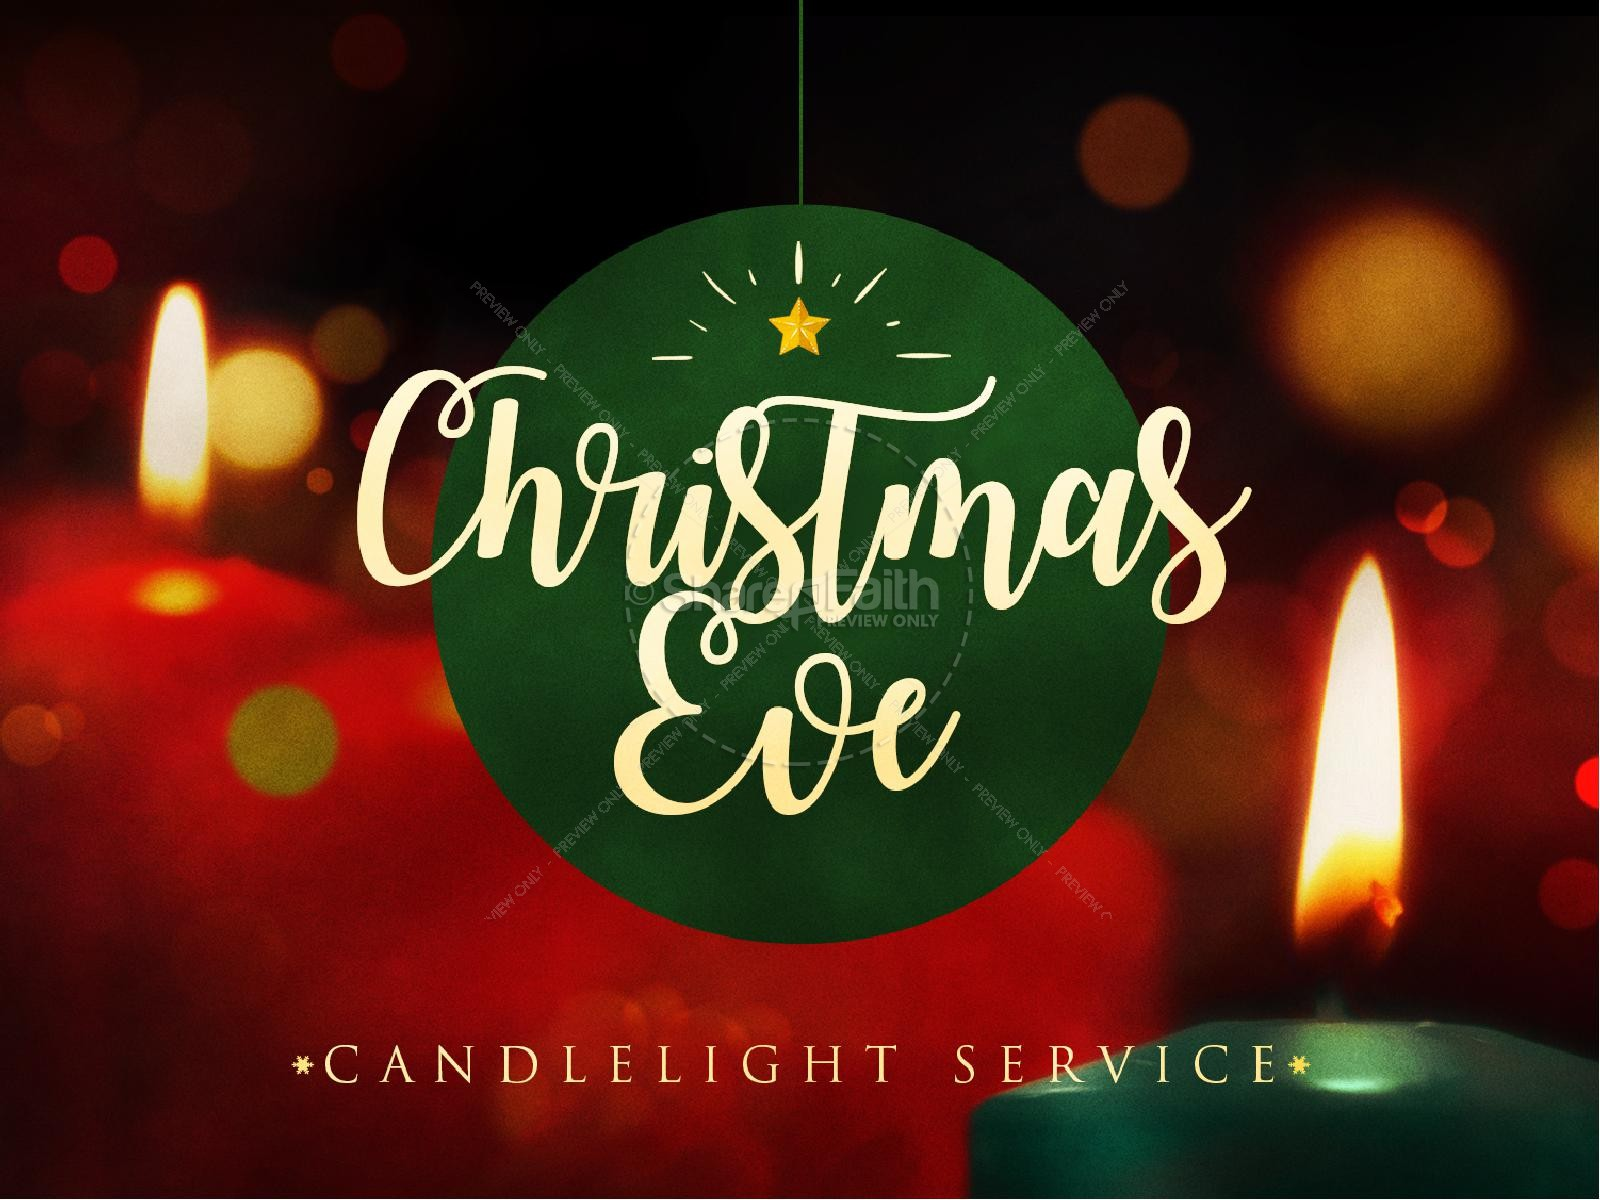 Christmas Eve Candlelight Service PowerPoint